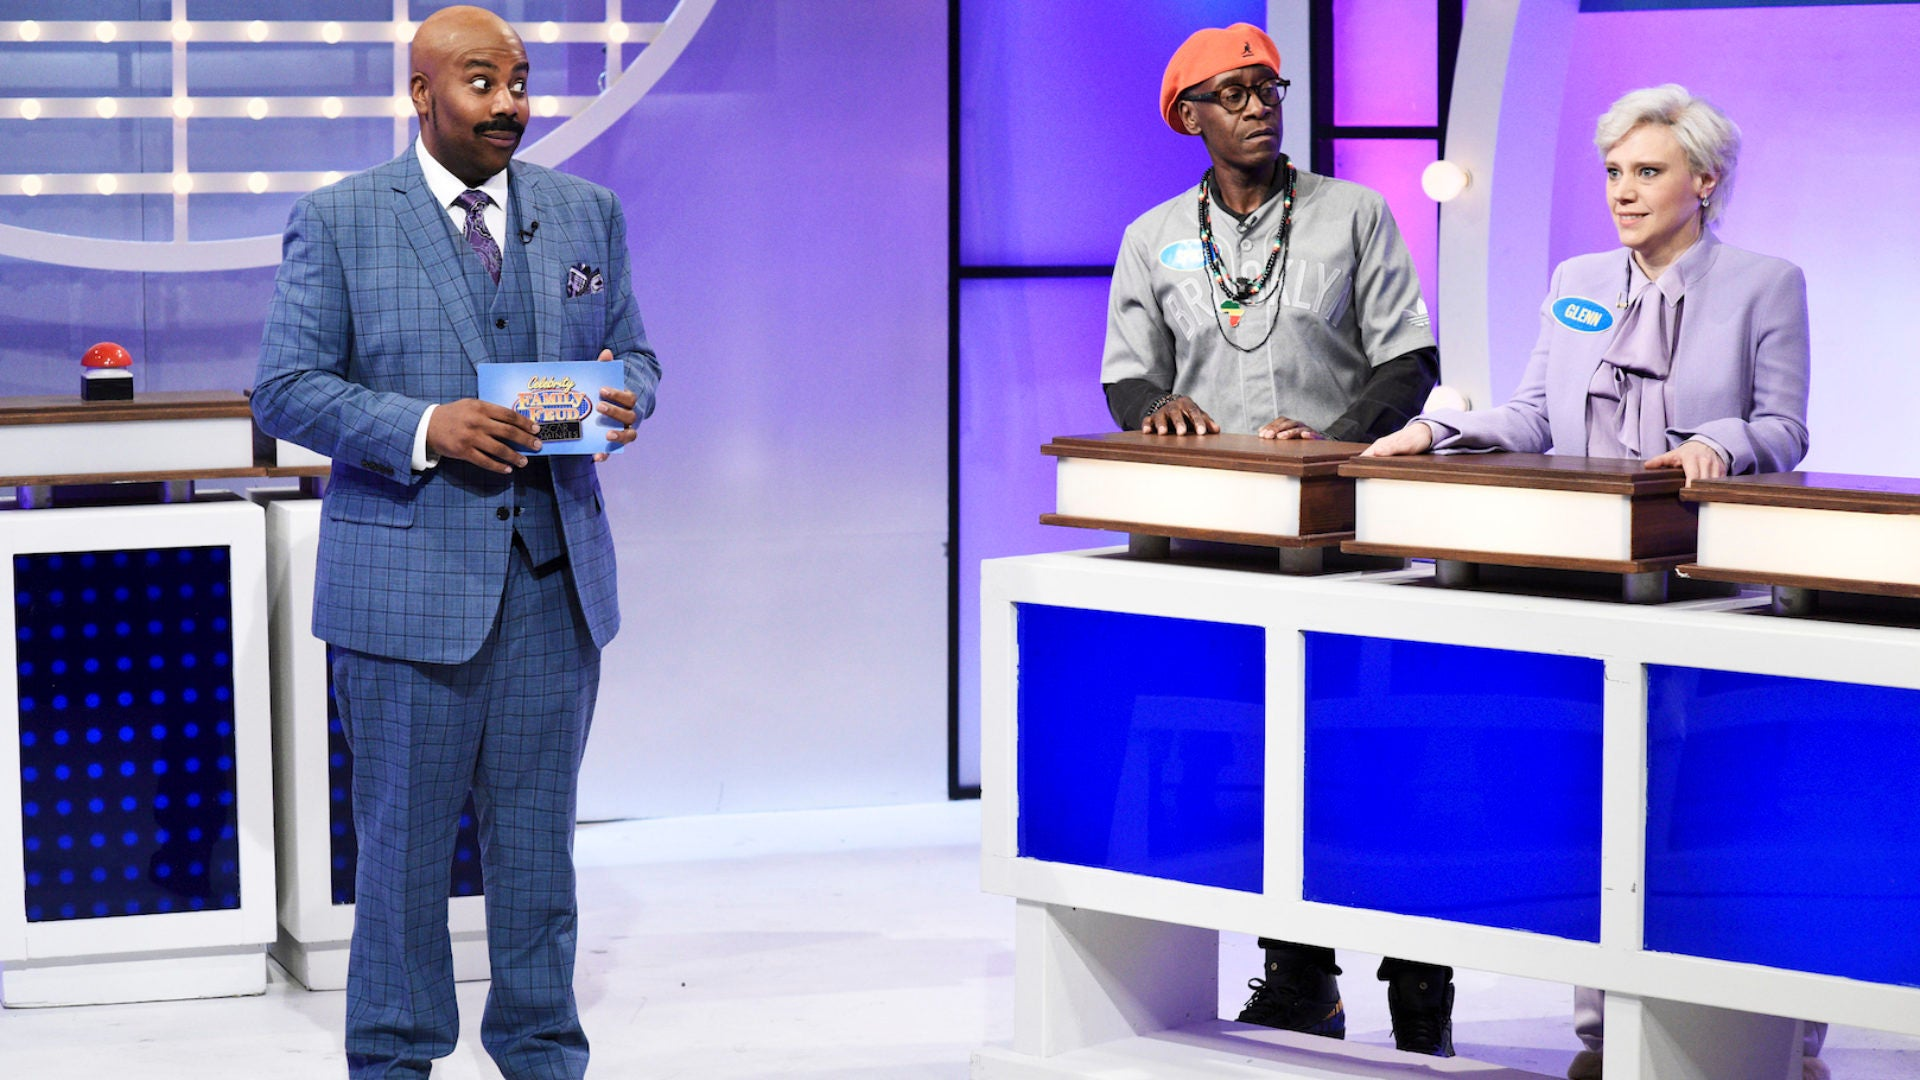 Steve Harvey Jokingly Told Kenan Thompson To 'Watch Yourself' Over Impression